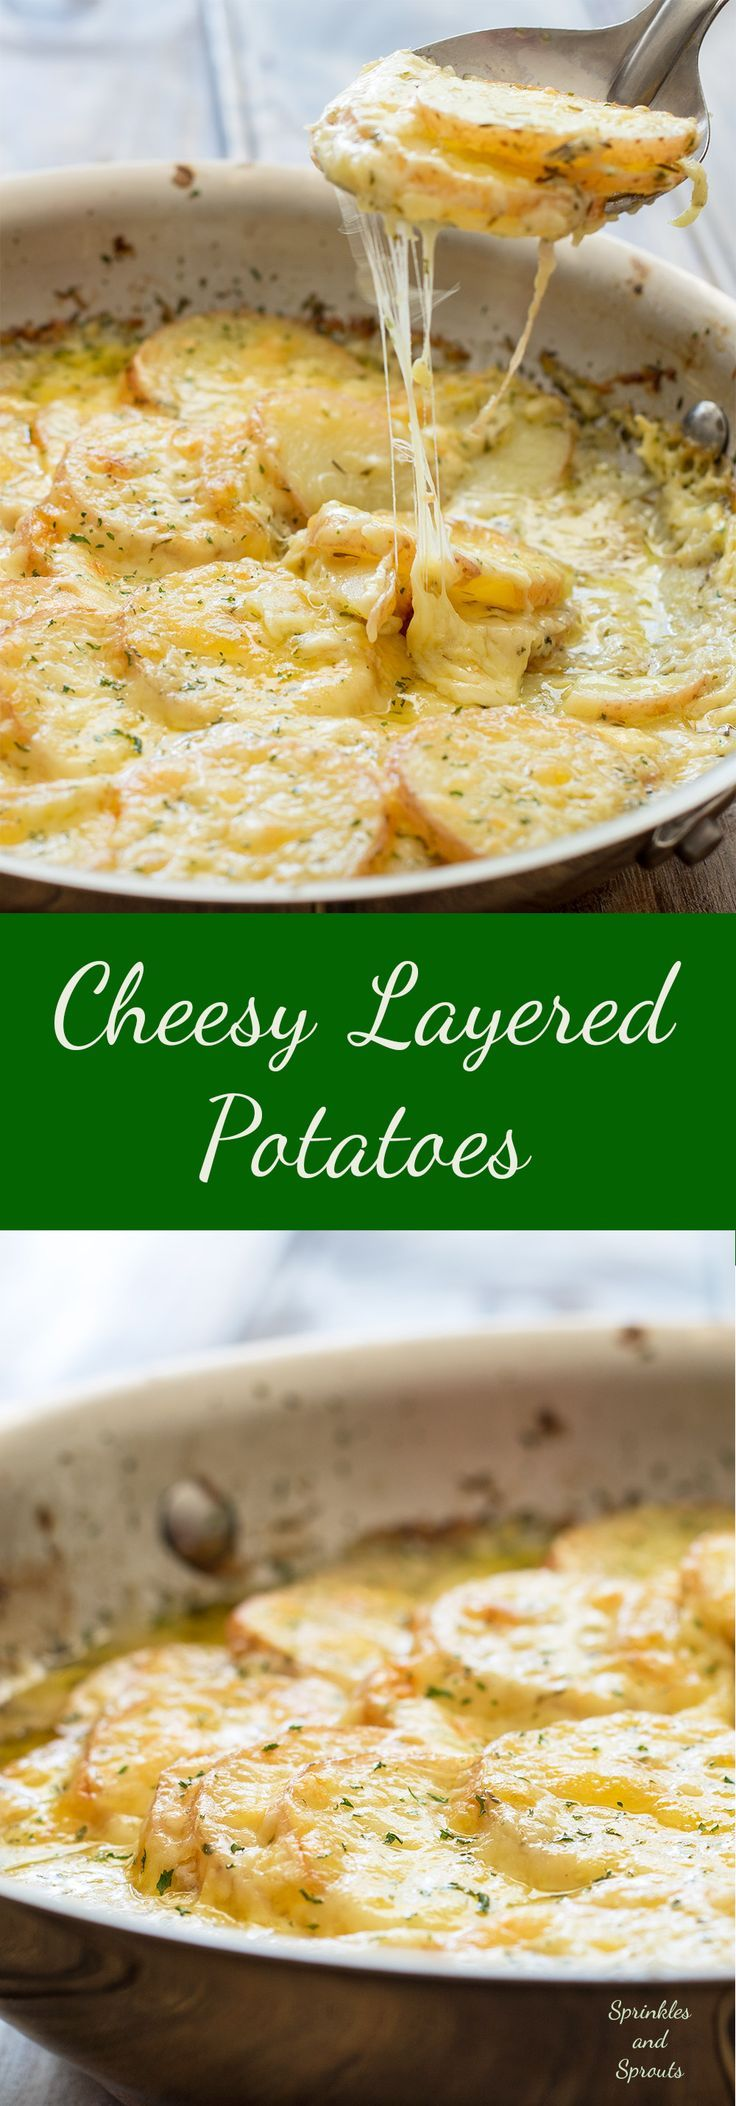 Cheesy Layered Potatoes. Potatoes, cream and cheese. Seriously what could be better? Layers of potato and onion cooked in cream and stock until tender and then smothered in cheese and baked to a melty, creamy perfection. This is comfort food at it's very best! | Sprinkles and Sprouts